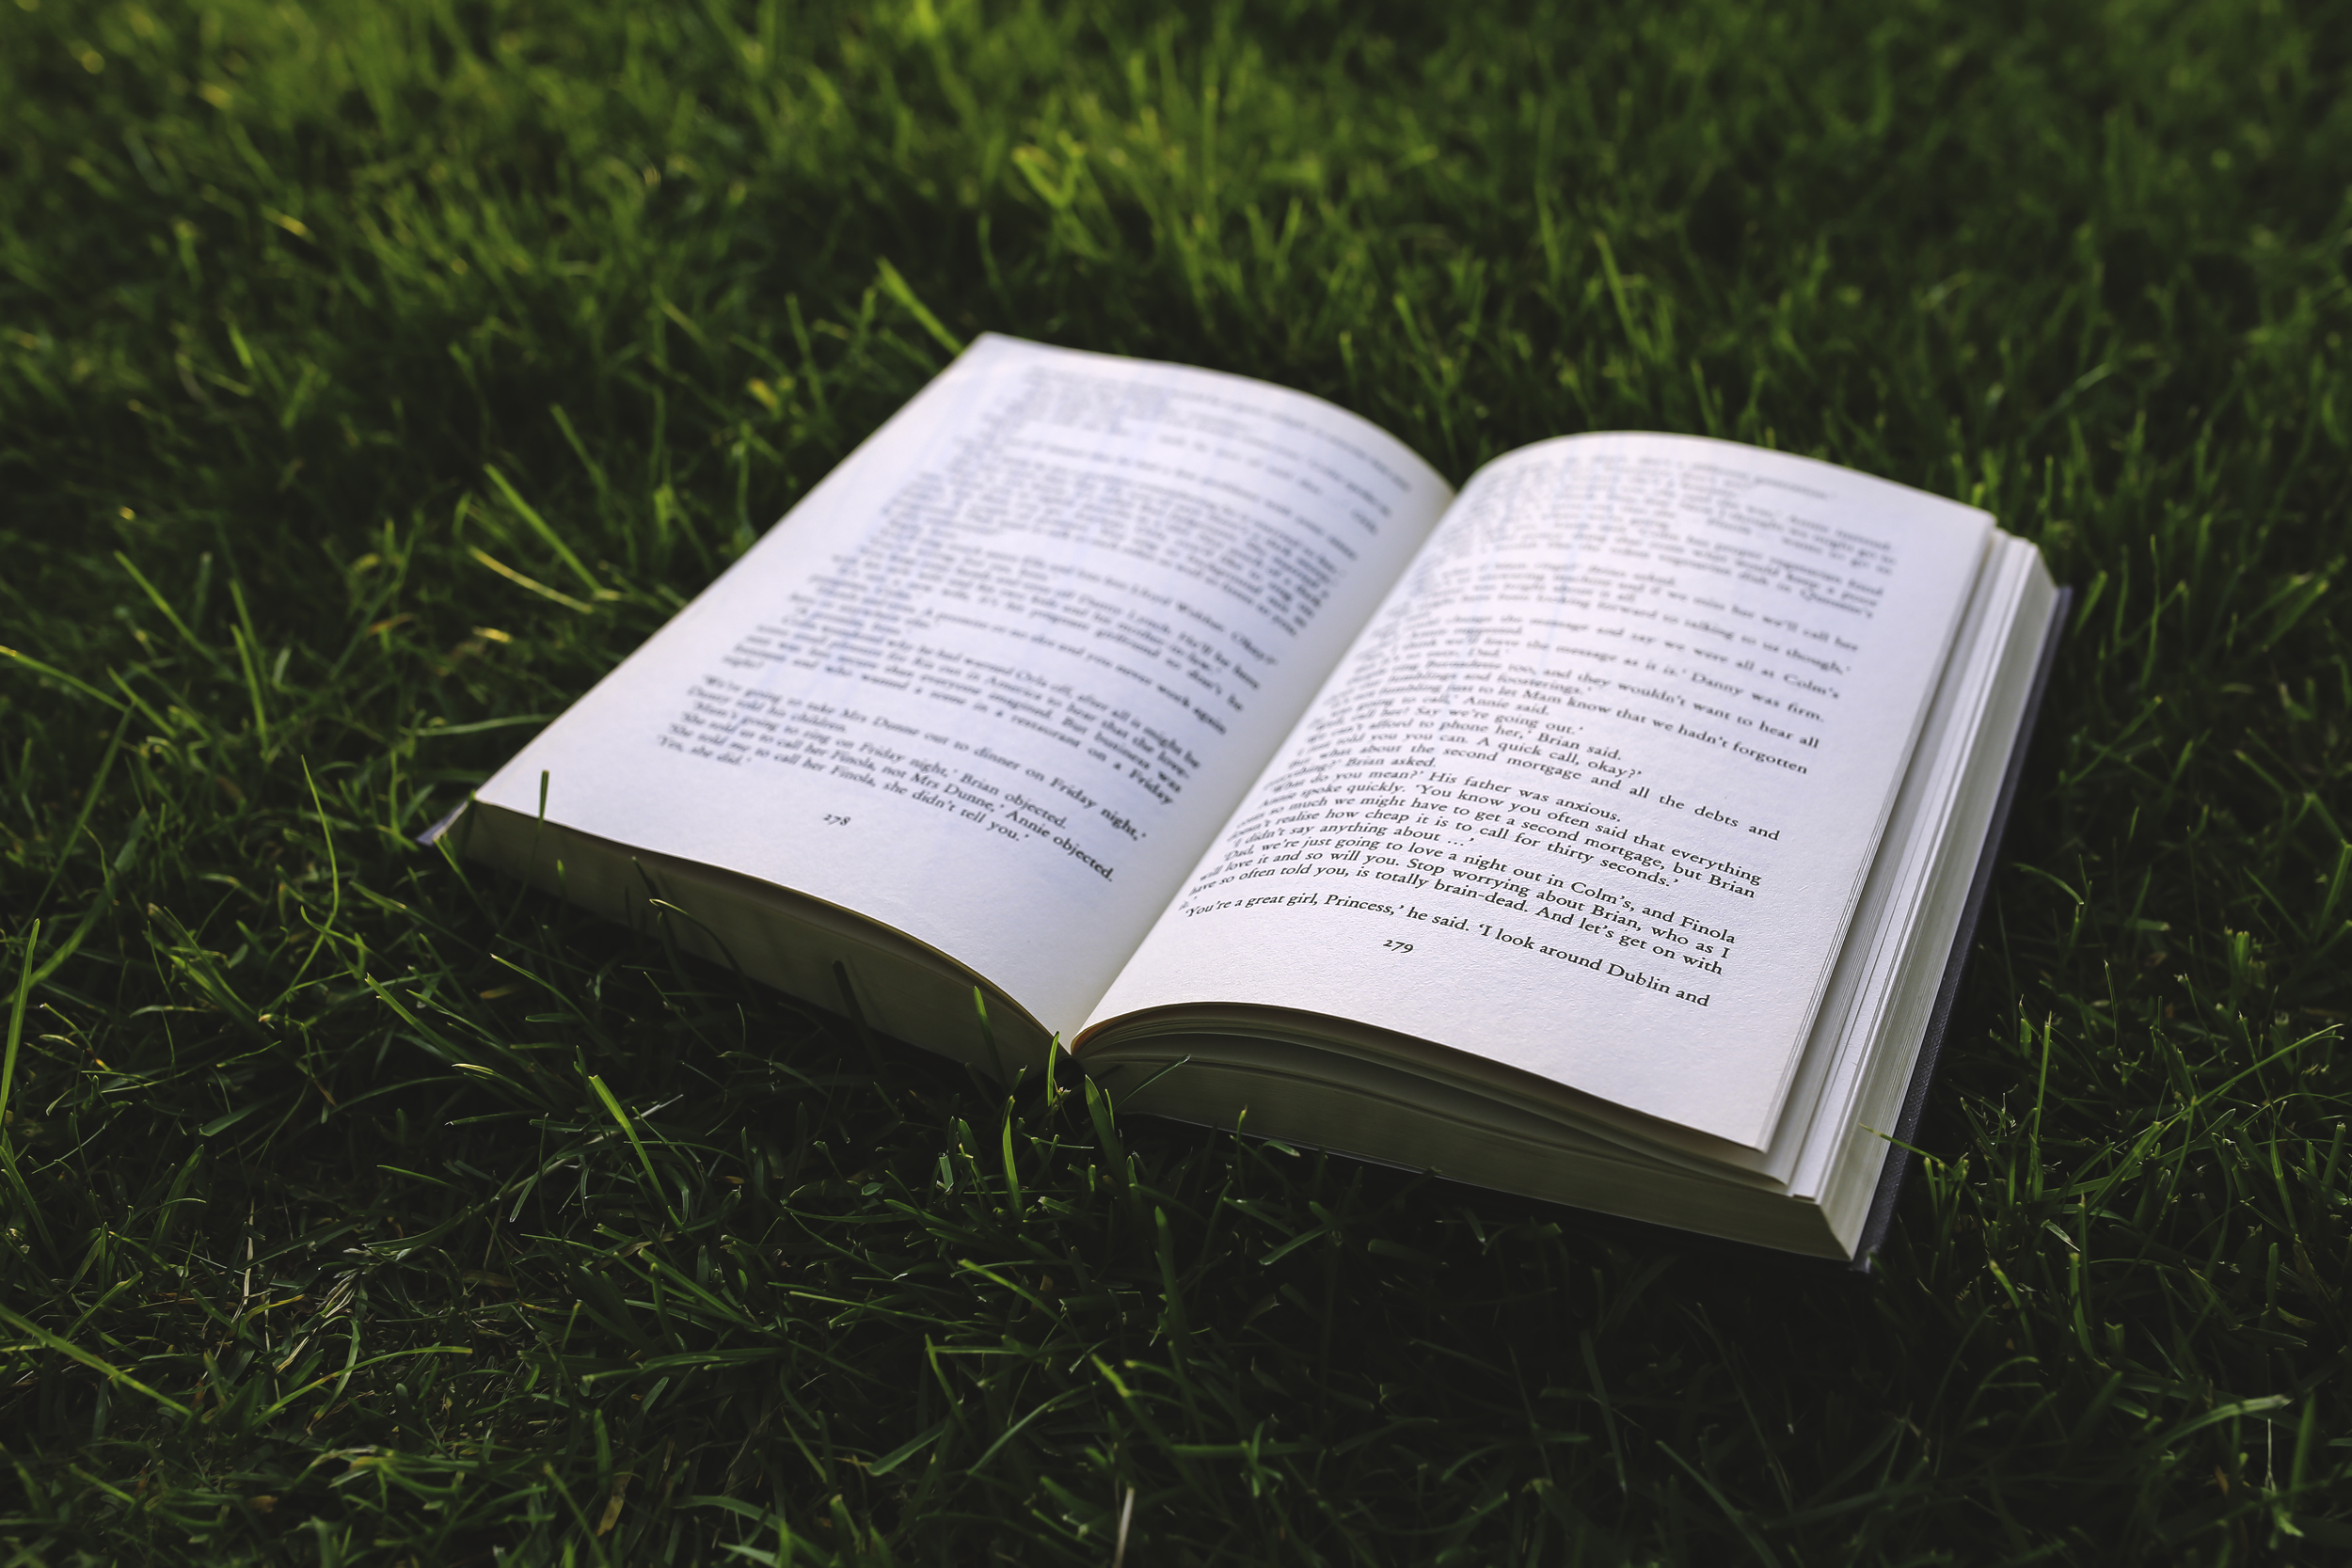 kaboompics.com_Book on the grass.jpg